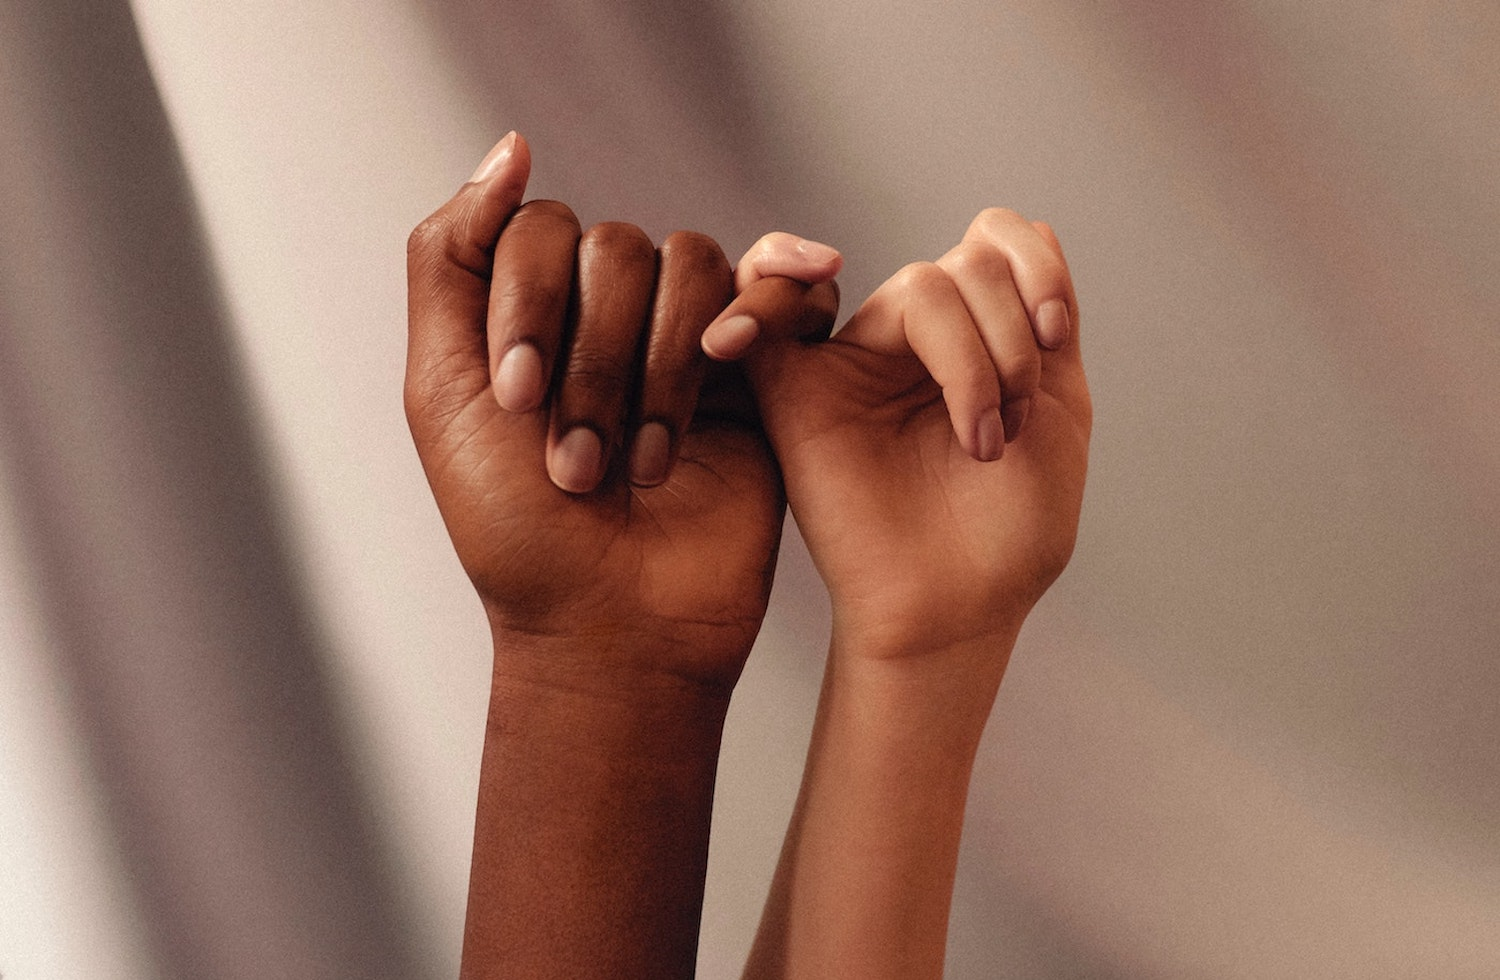 Two hands with interlocking pinky fingers